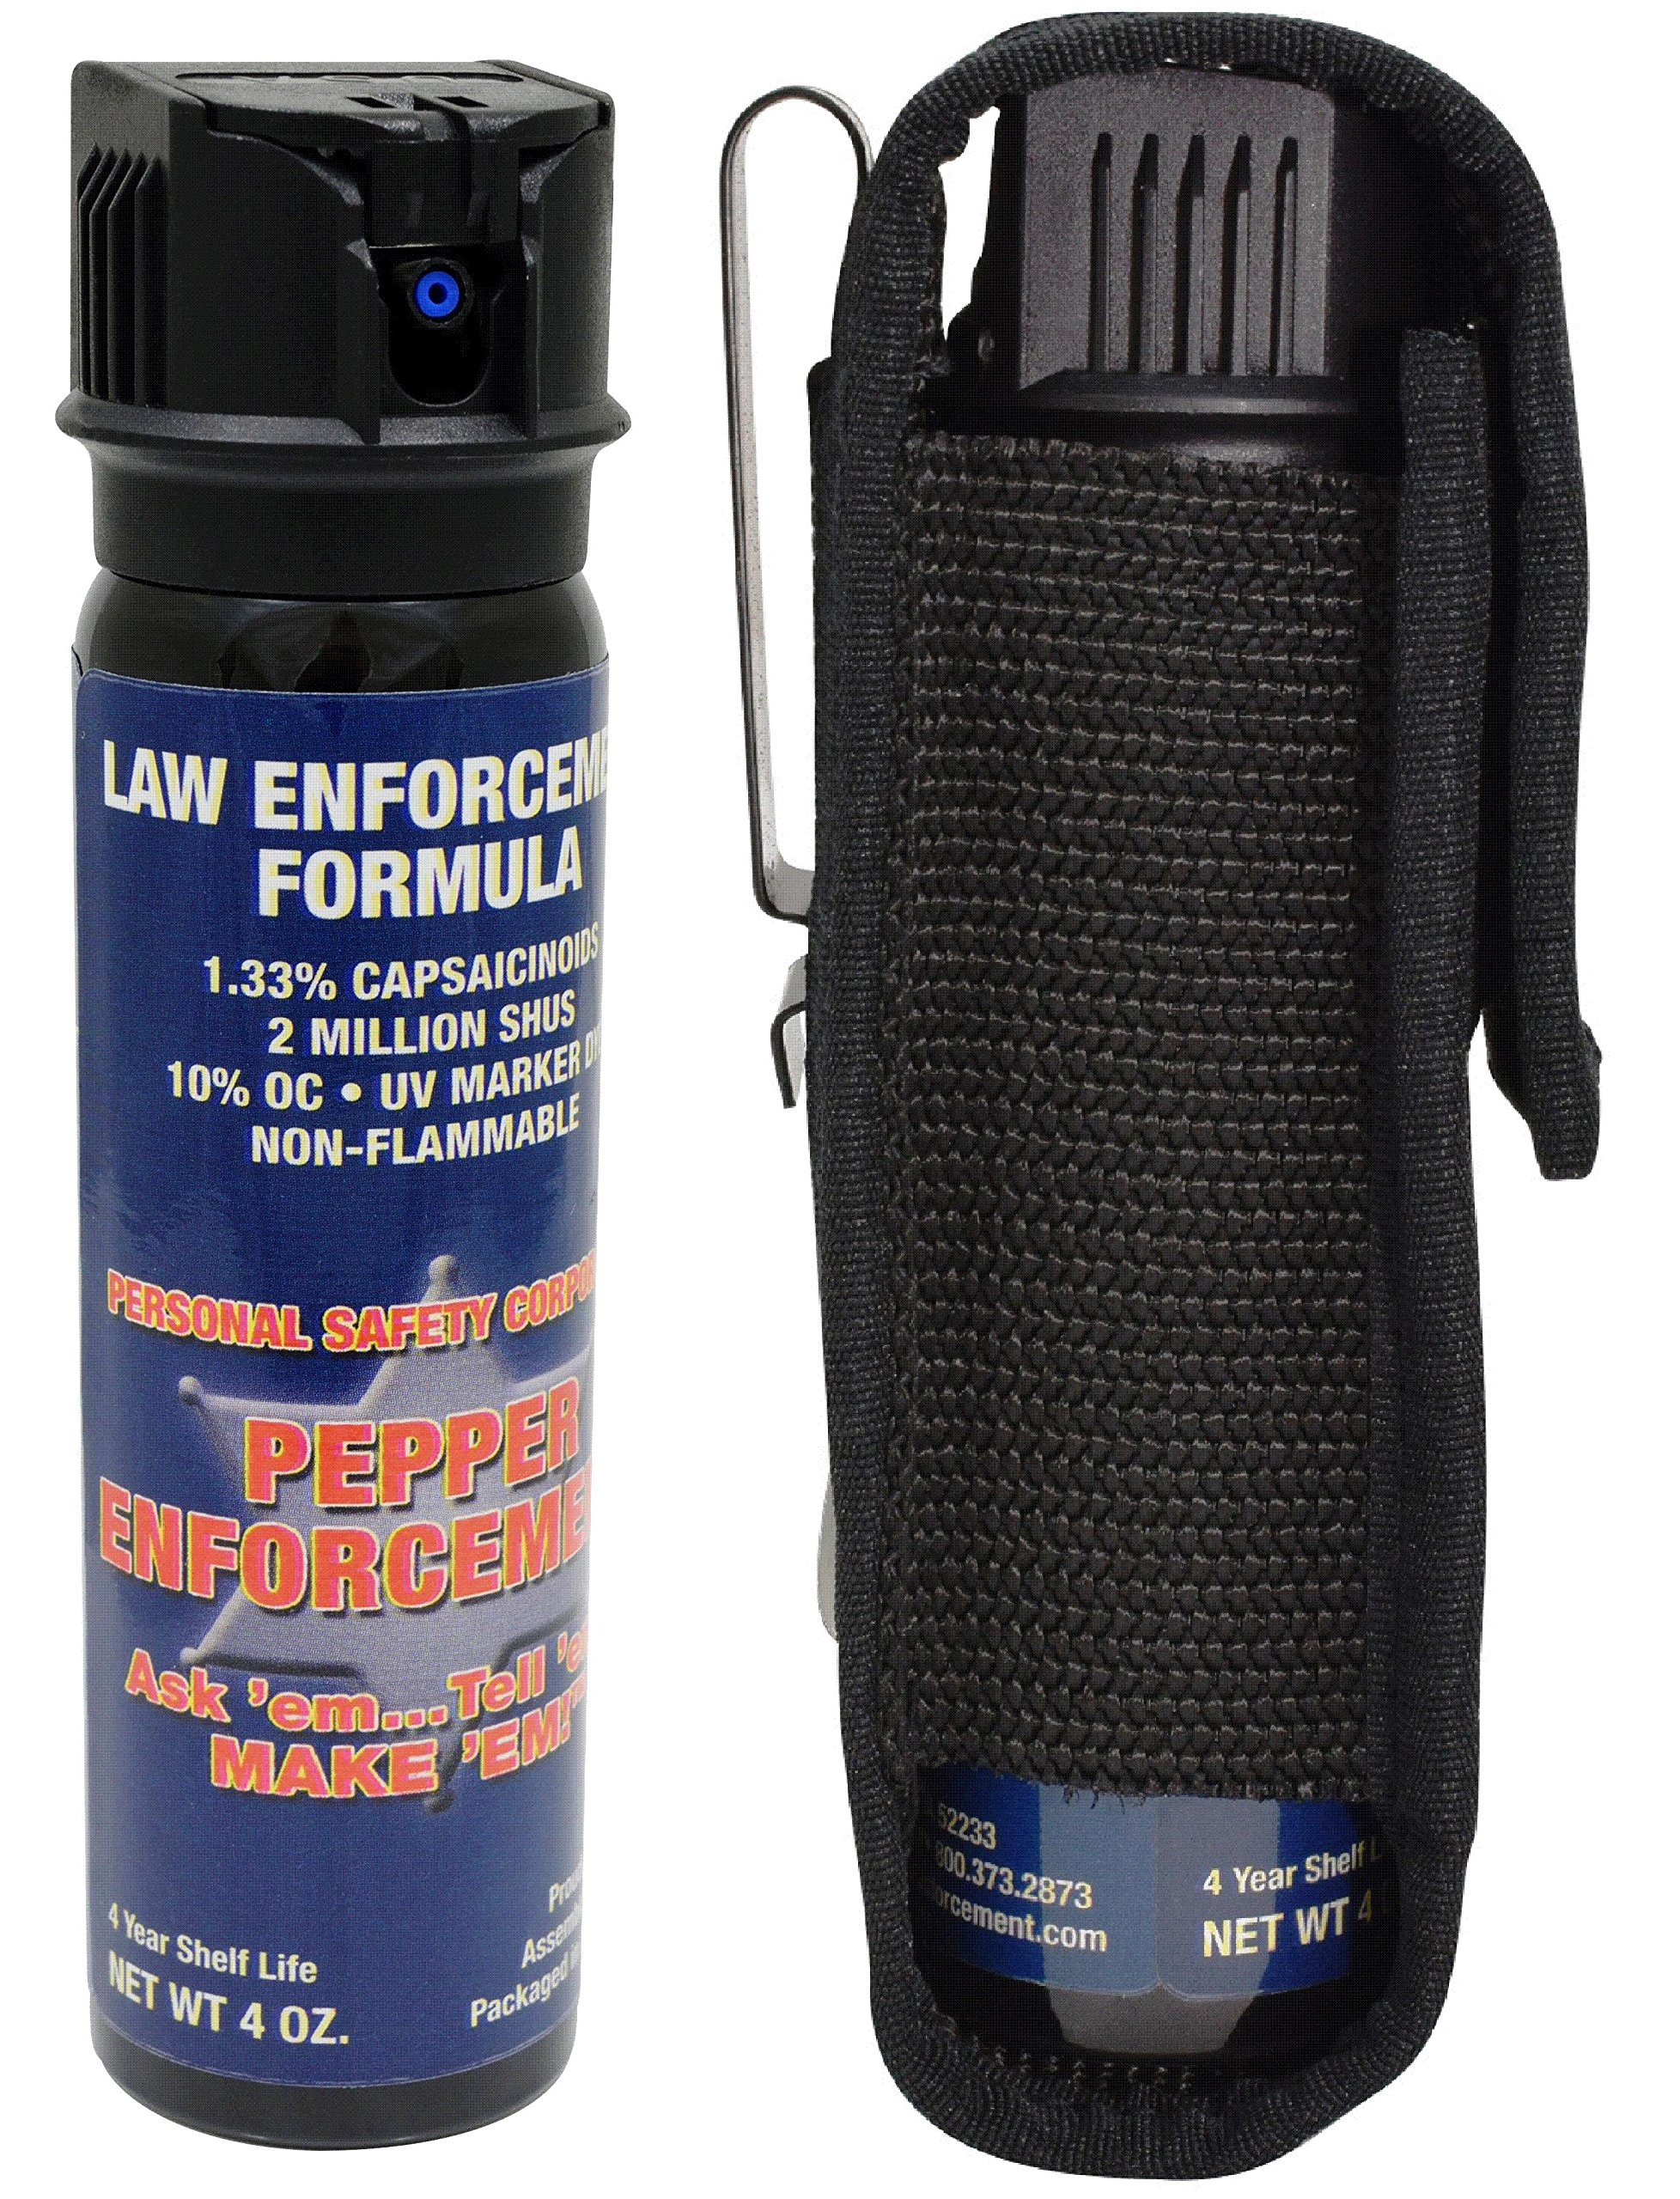 Pepper Enforcement 4 oz. Splatter Stream Police Strength 10% OC Spray and Tactical Metal Clip Holster - Professional Grade Emergency Self Defense Non Lethal Weapon for Personal Protection by Pepper Enforcement